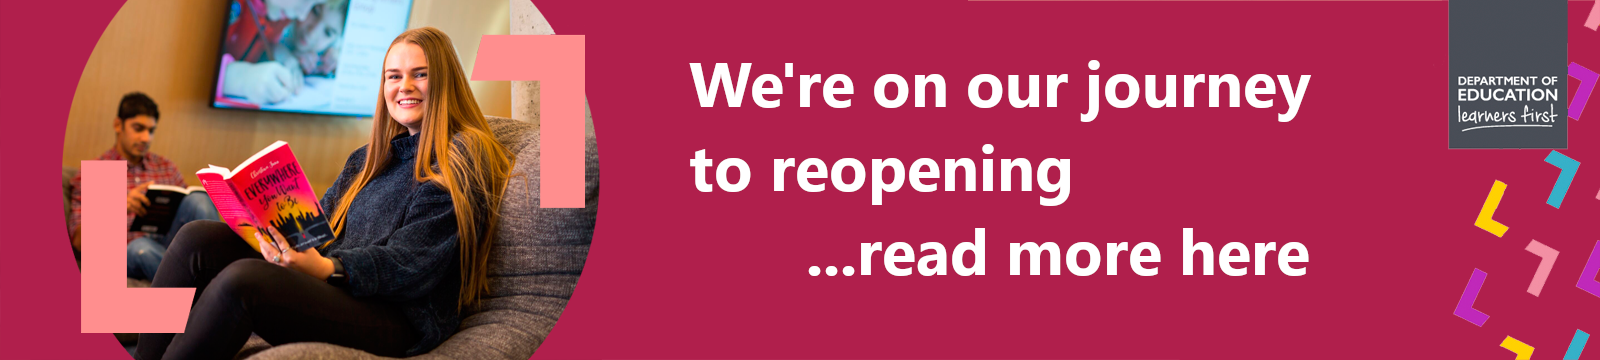 More services coming soon. Click here for more info. We're on our journey to reopening.